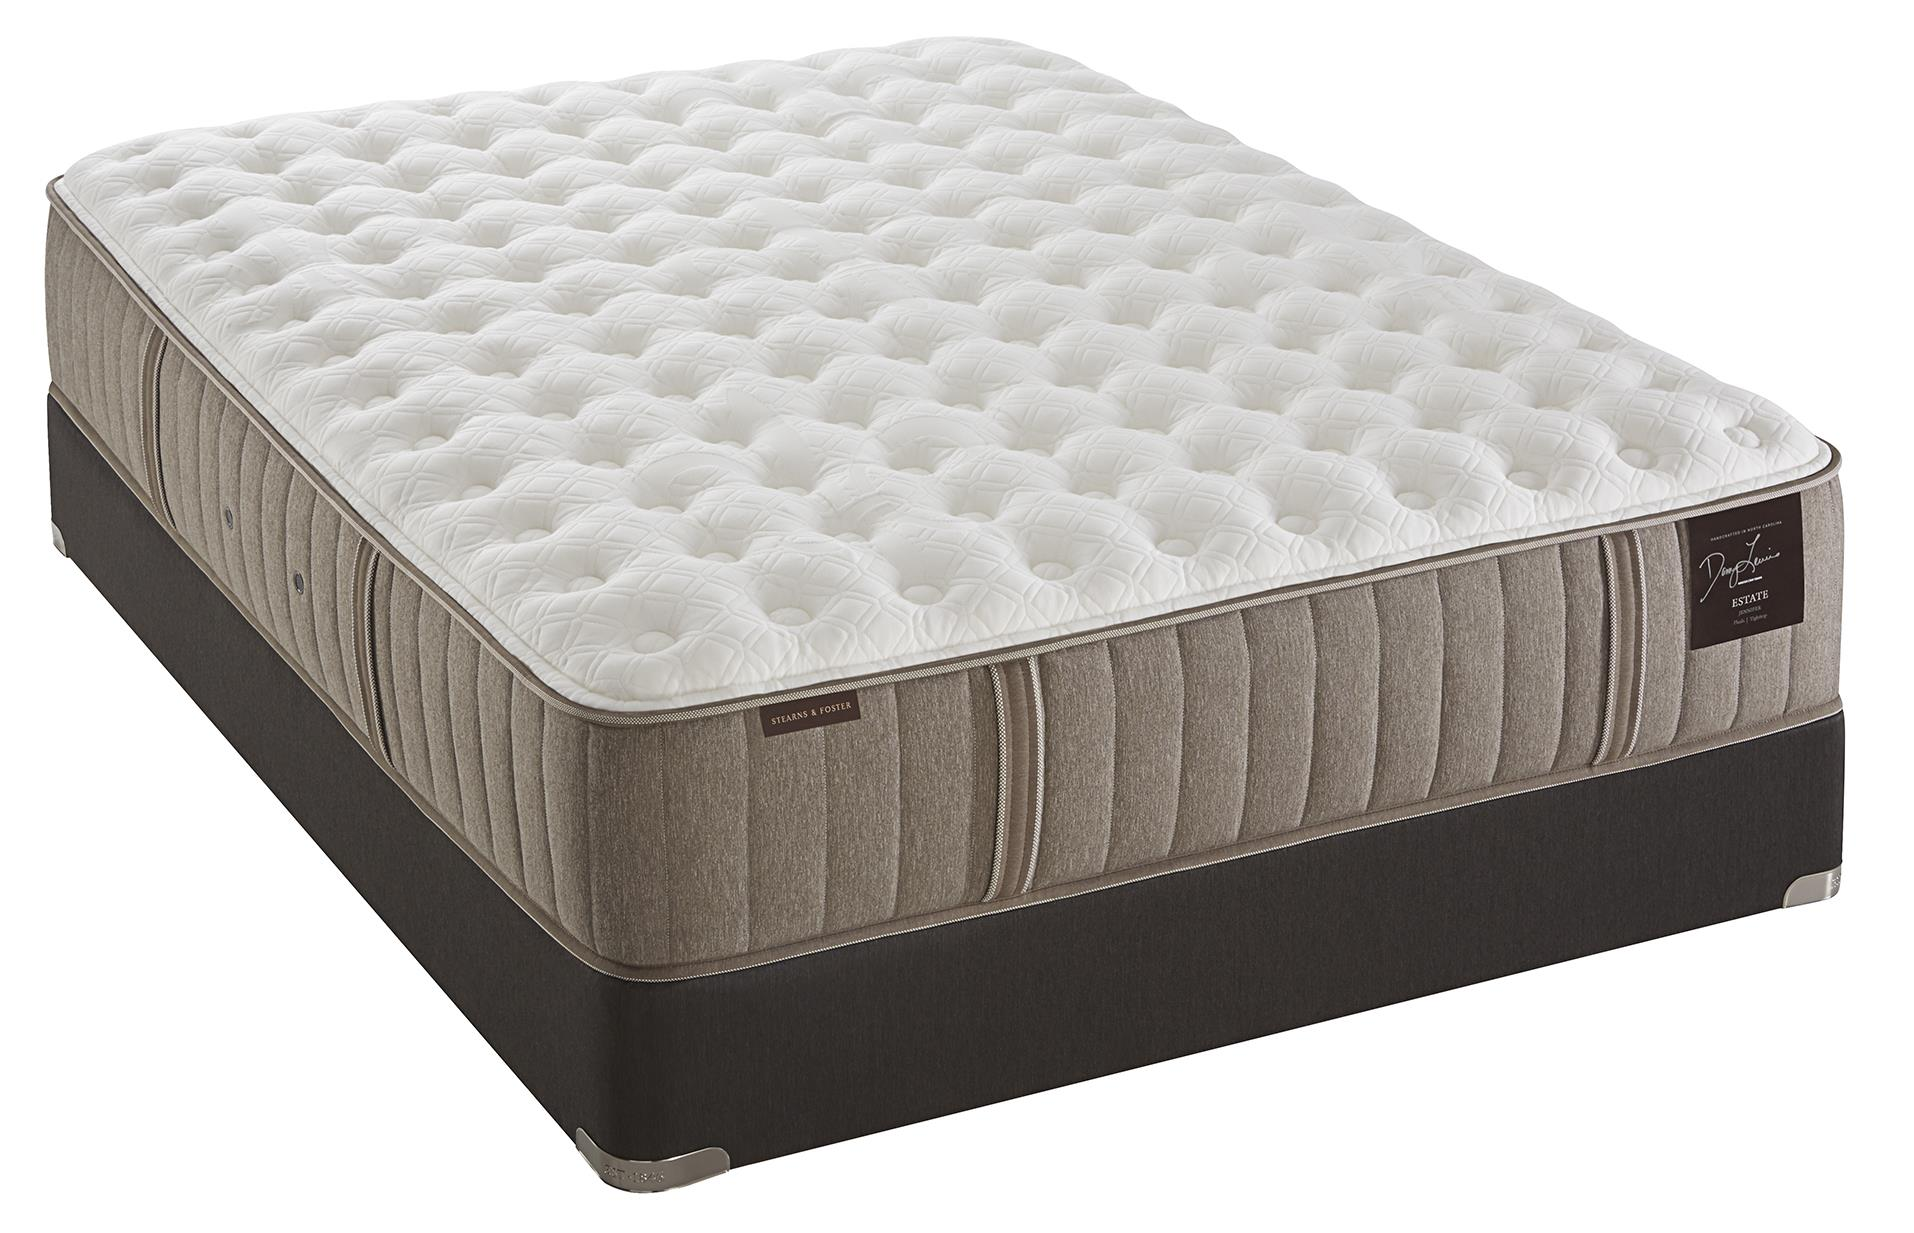 Stearns & Foster Oak Terrace Luxury Plush King Plush Tight Top Mattress Set - Item Number: Plush-K+2xEase-TXL